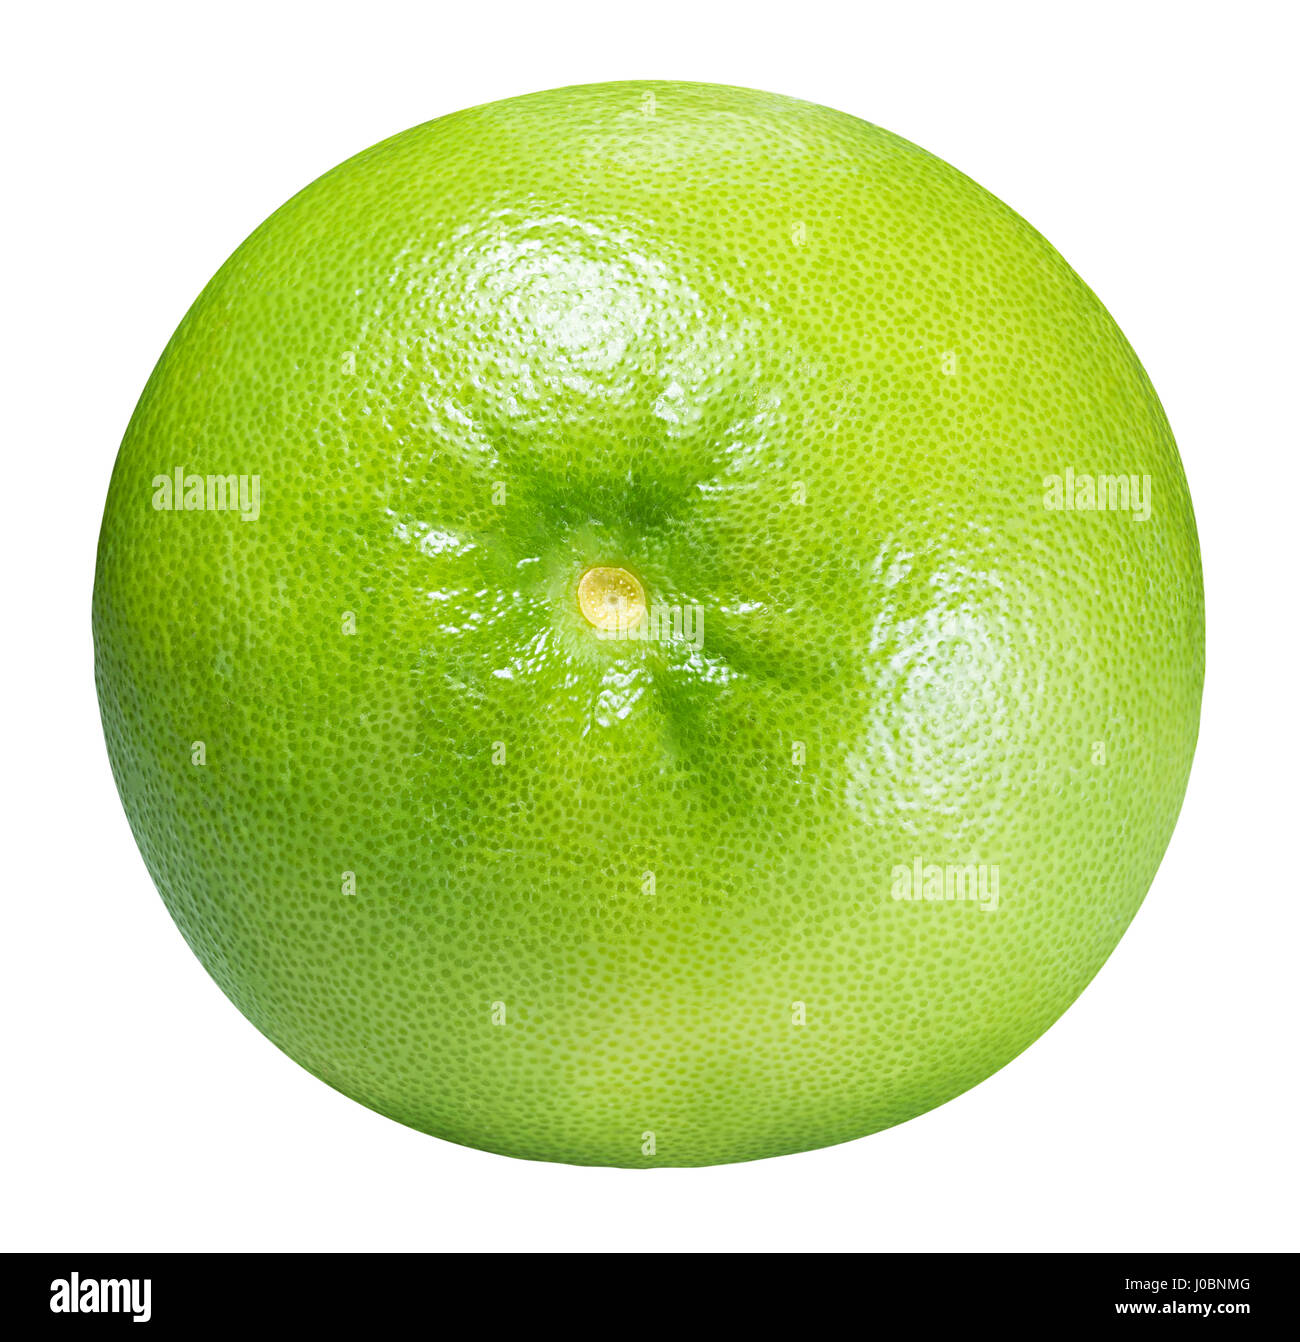 Green grapefruit, sweetie, white grapefruit isolated on white background with clipping path - Stock Image